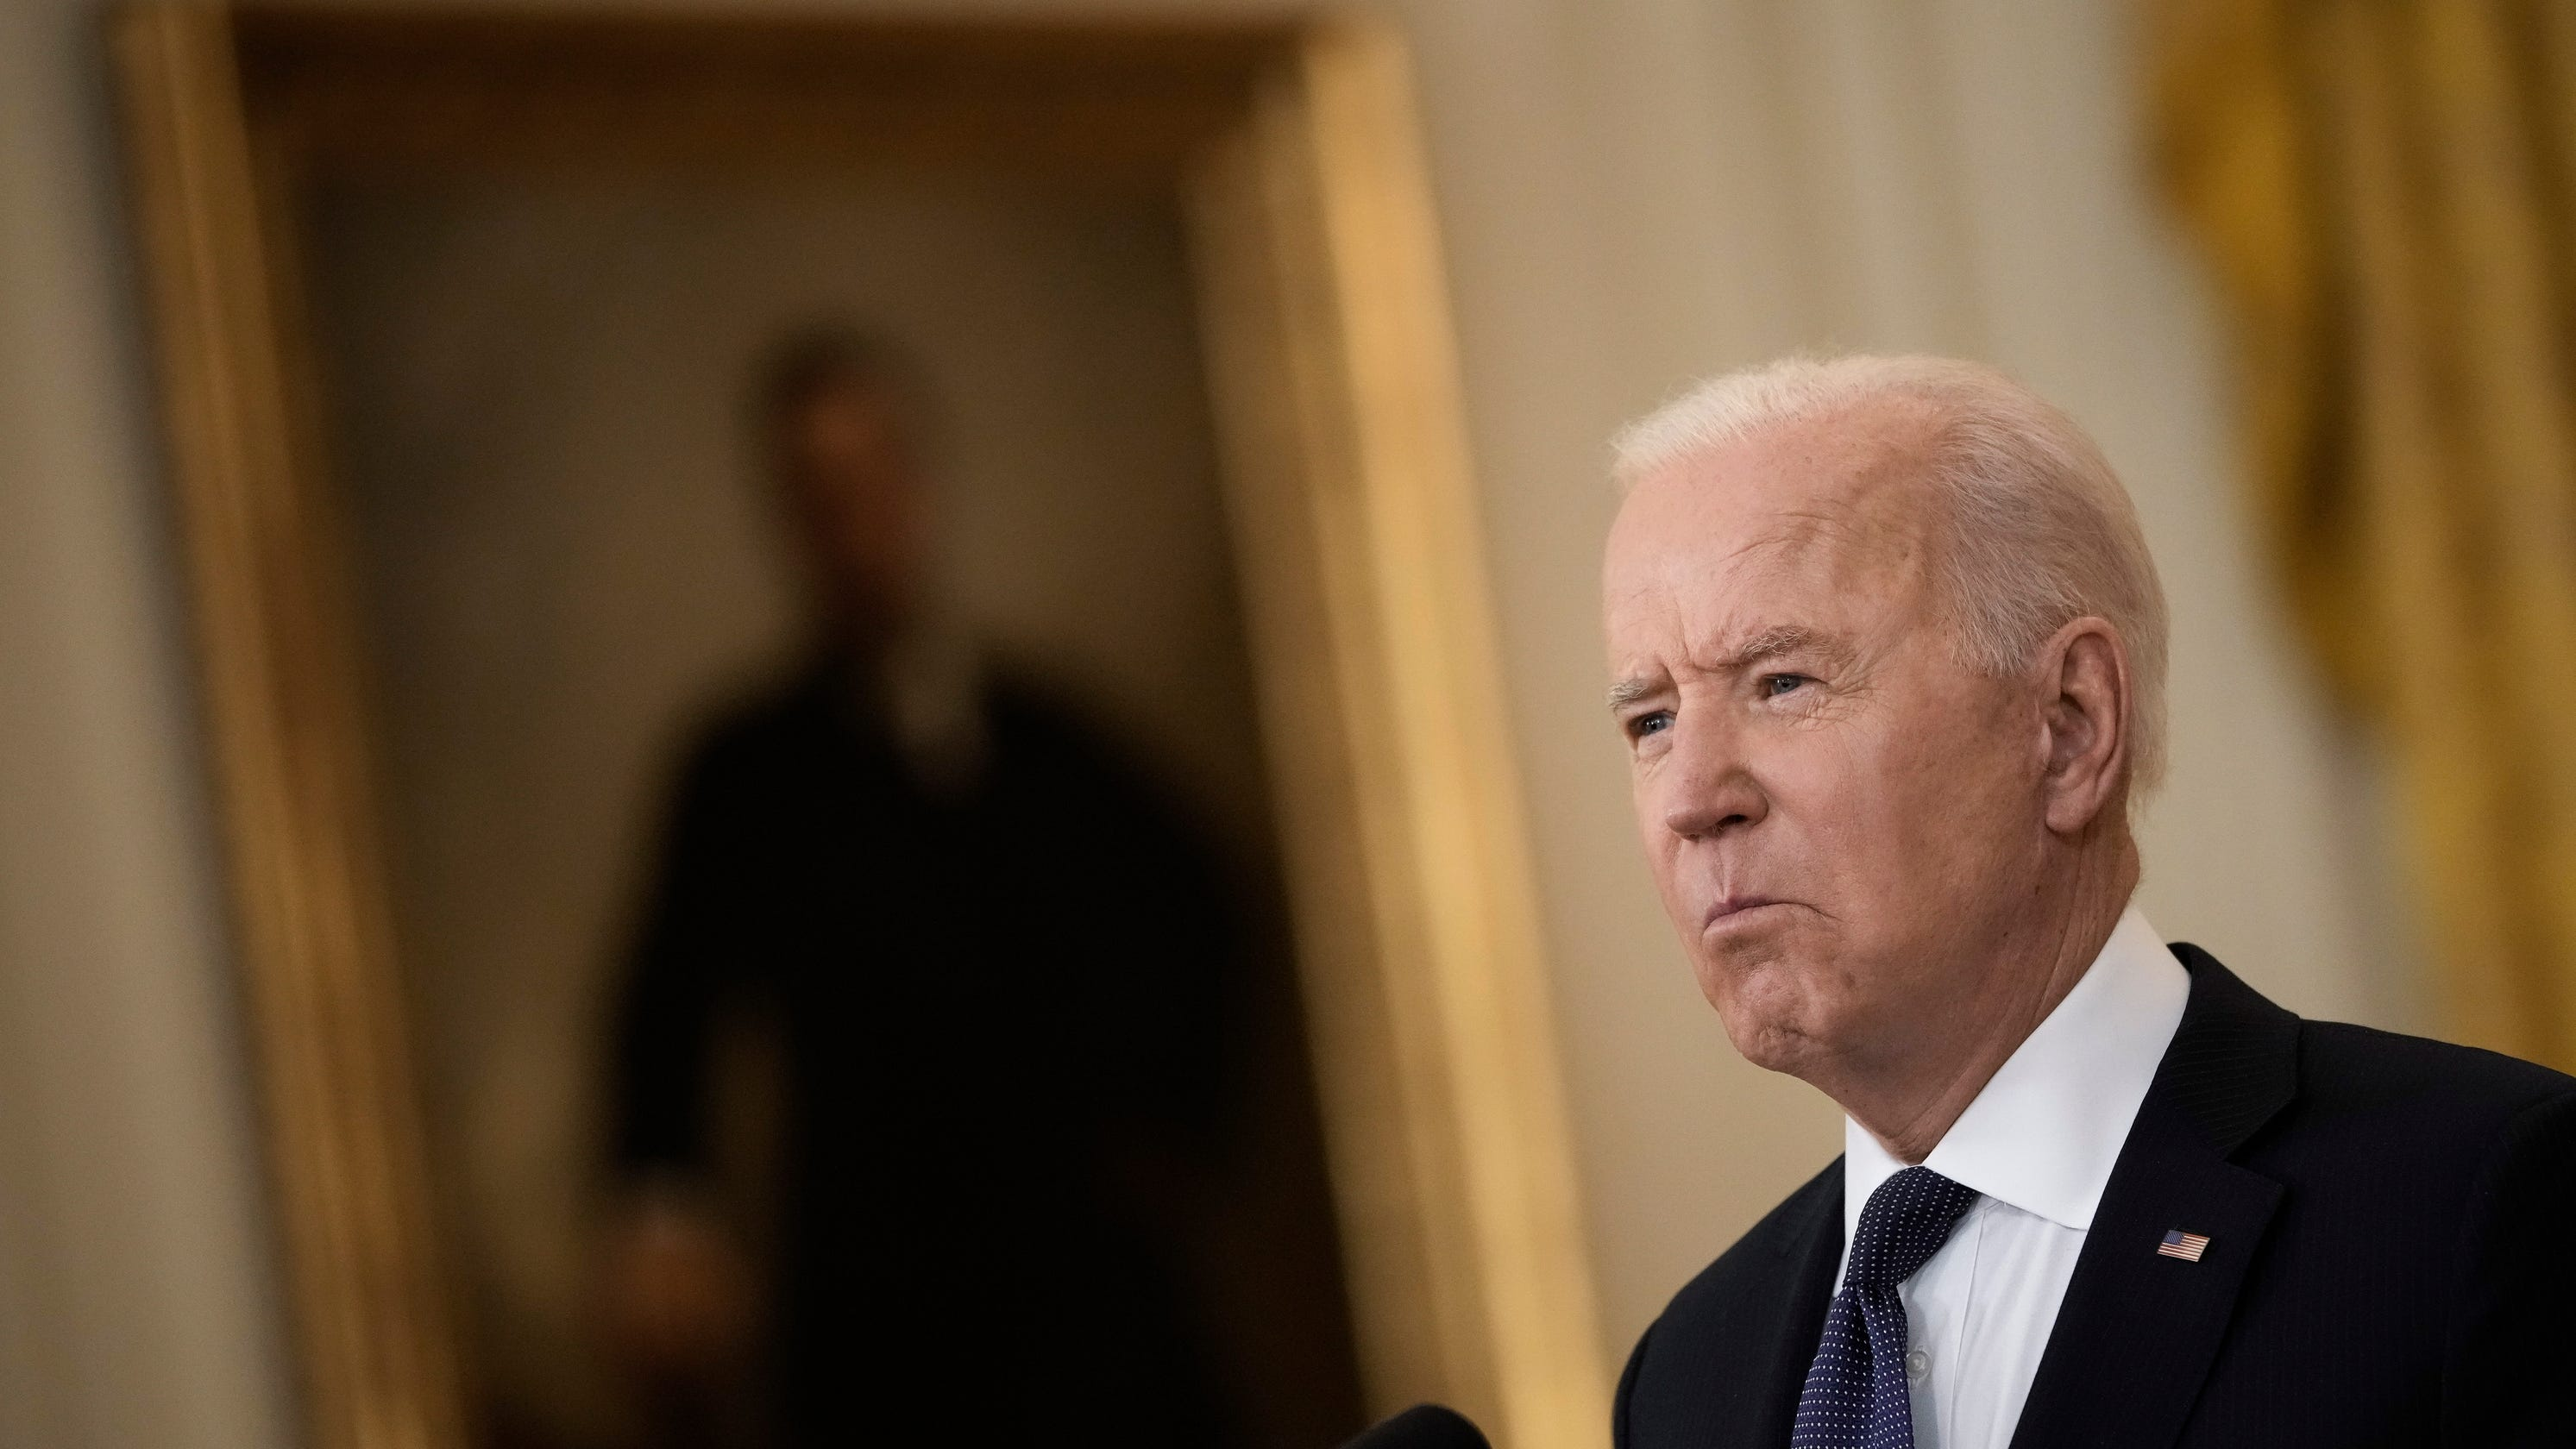 Biden announces Uber, Lyft partnership providing free rides to COVID-19 vaccination sites through July 4